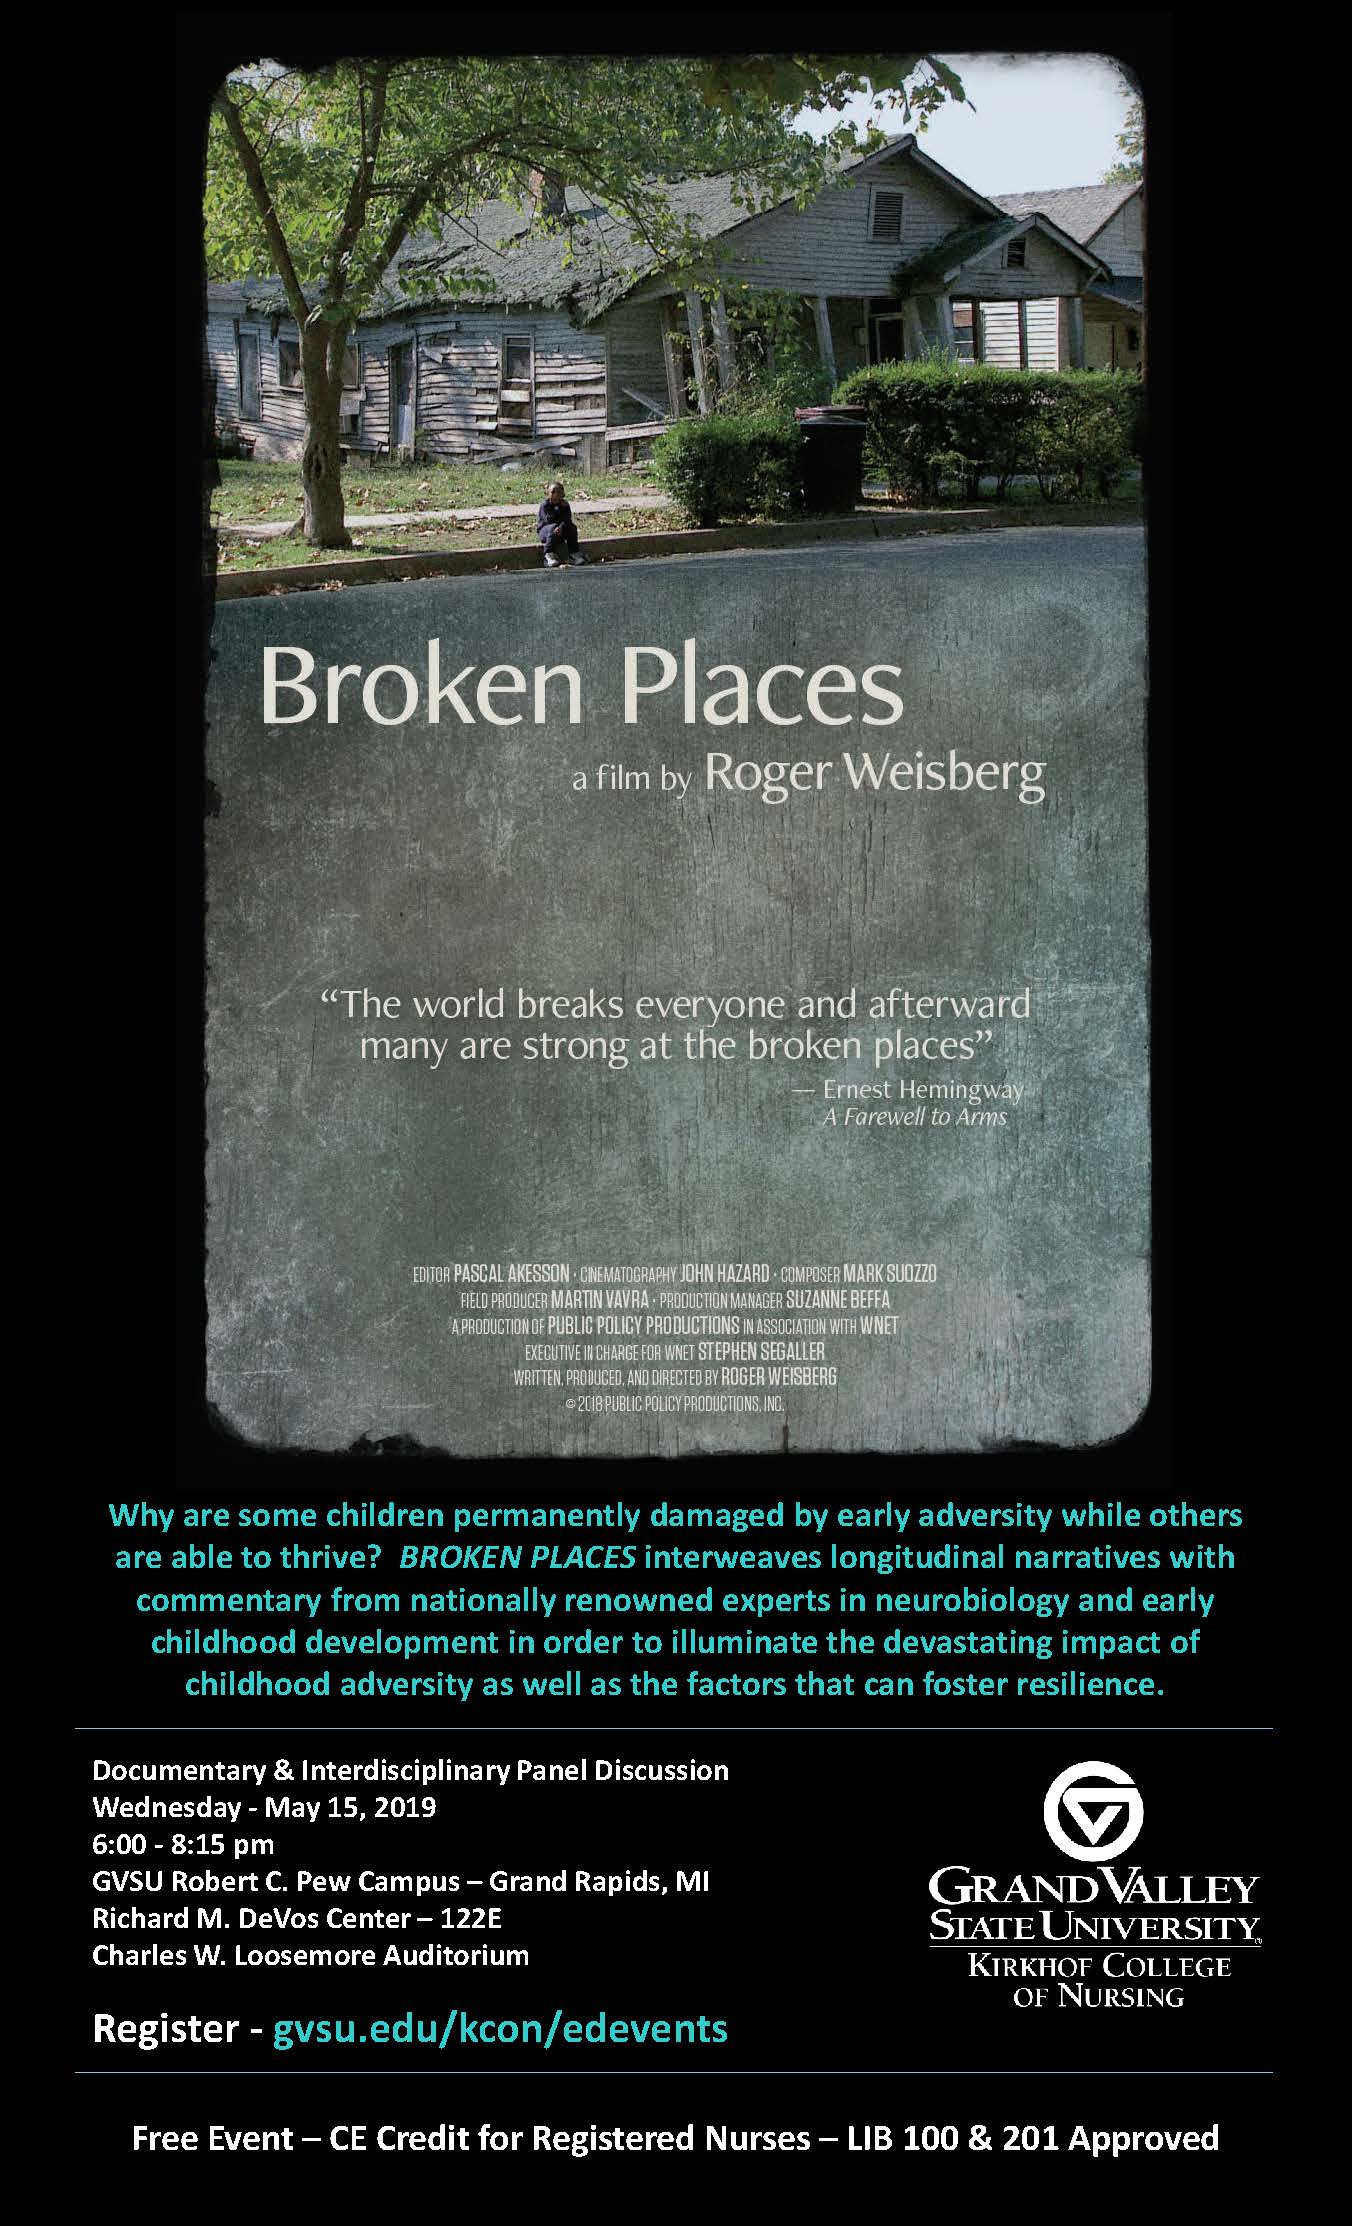 Broken Places Event Final Flyer 5-2019[1].jpg